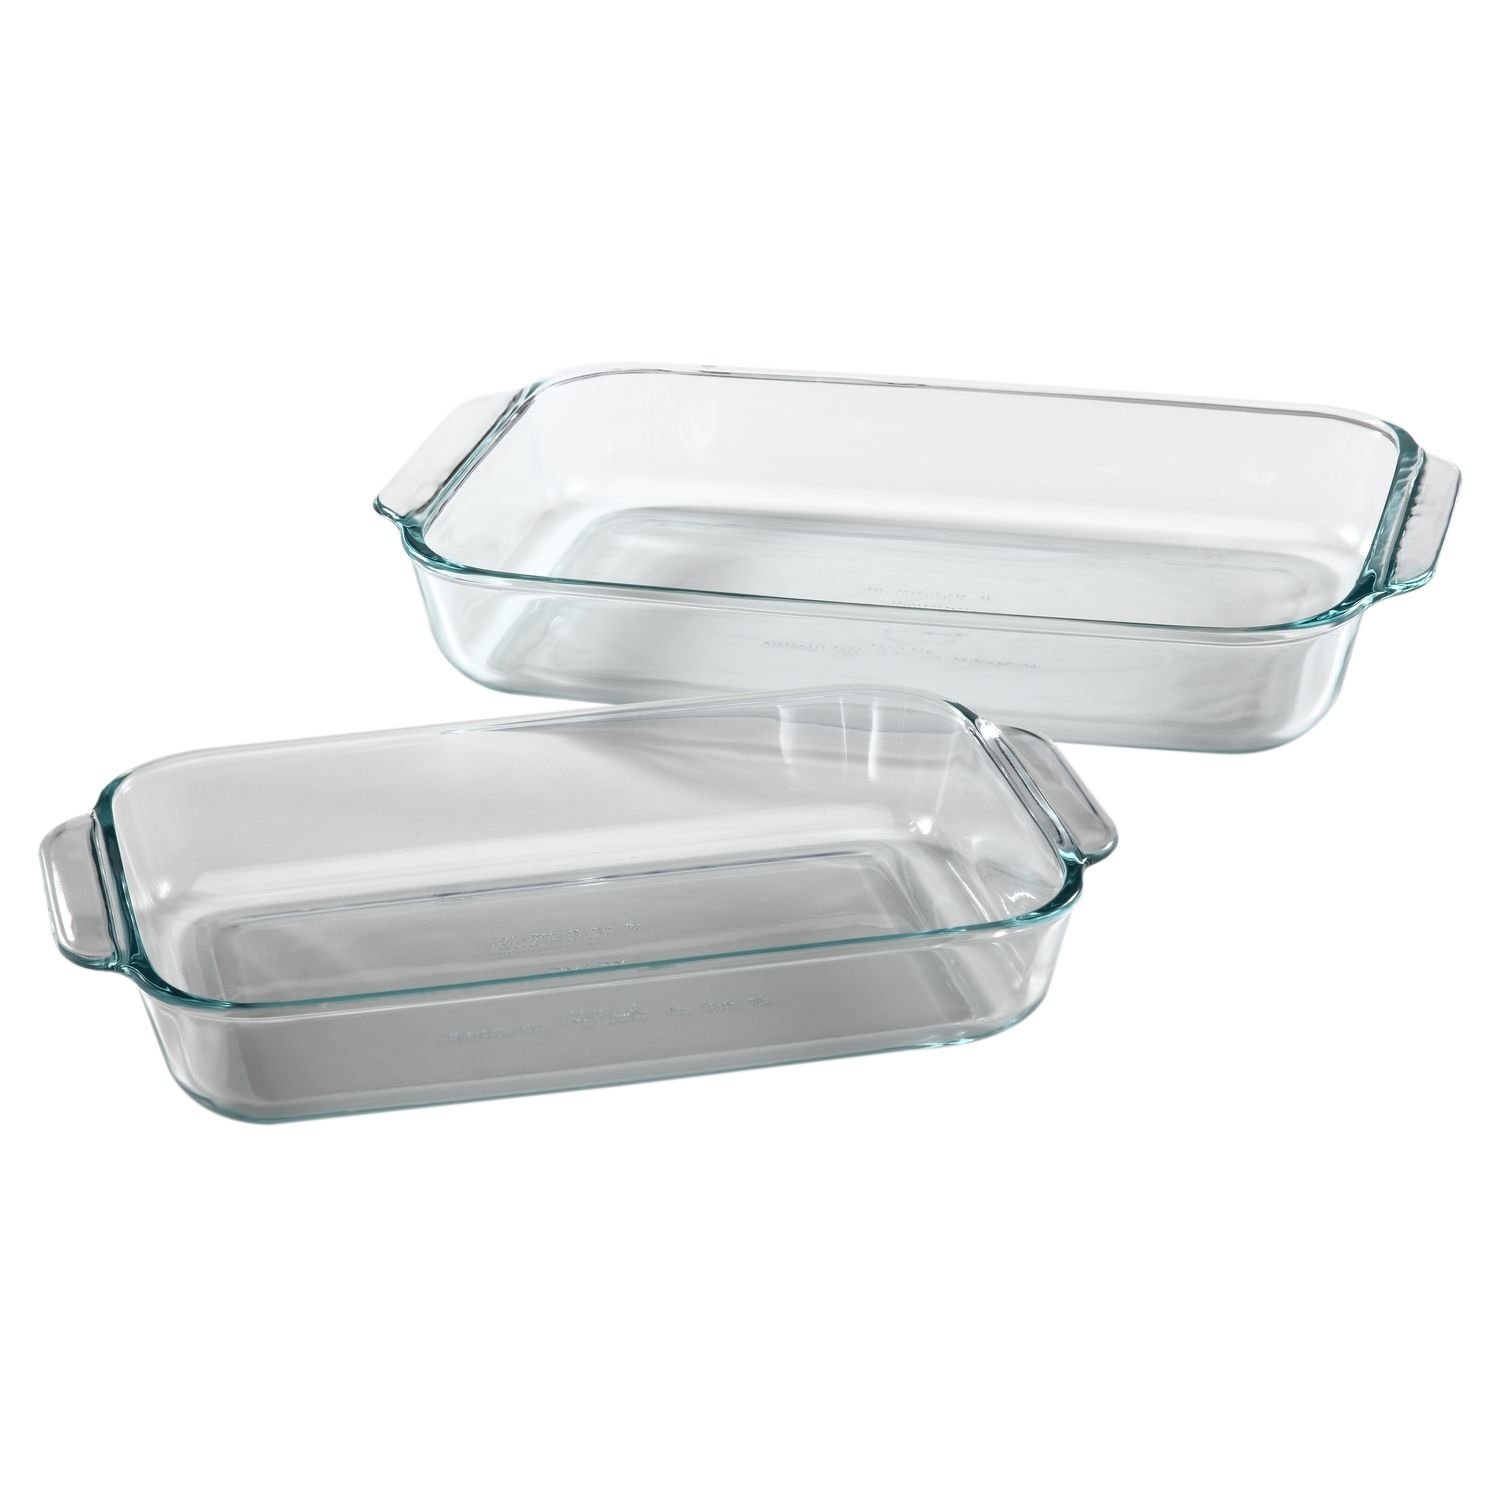 Pyrex Basics Clear Oblong Glass Baking Dishes - 2 Piece Value-plus Pack Set - 1 Each: 2 Quart, 3 Quart